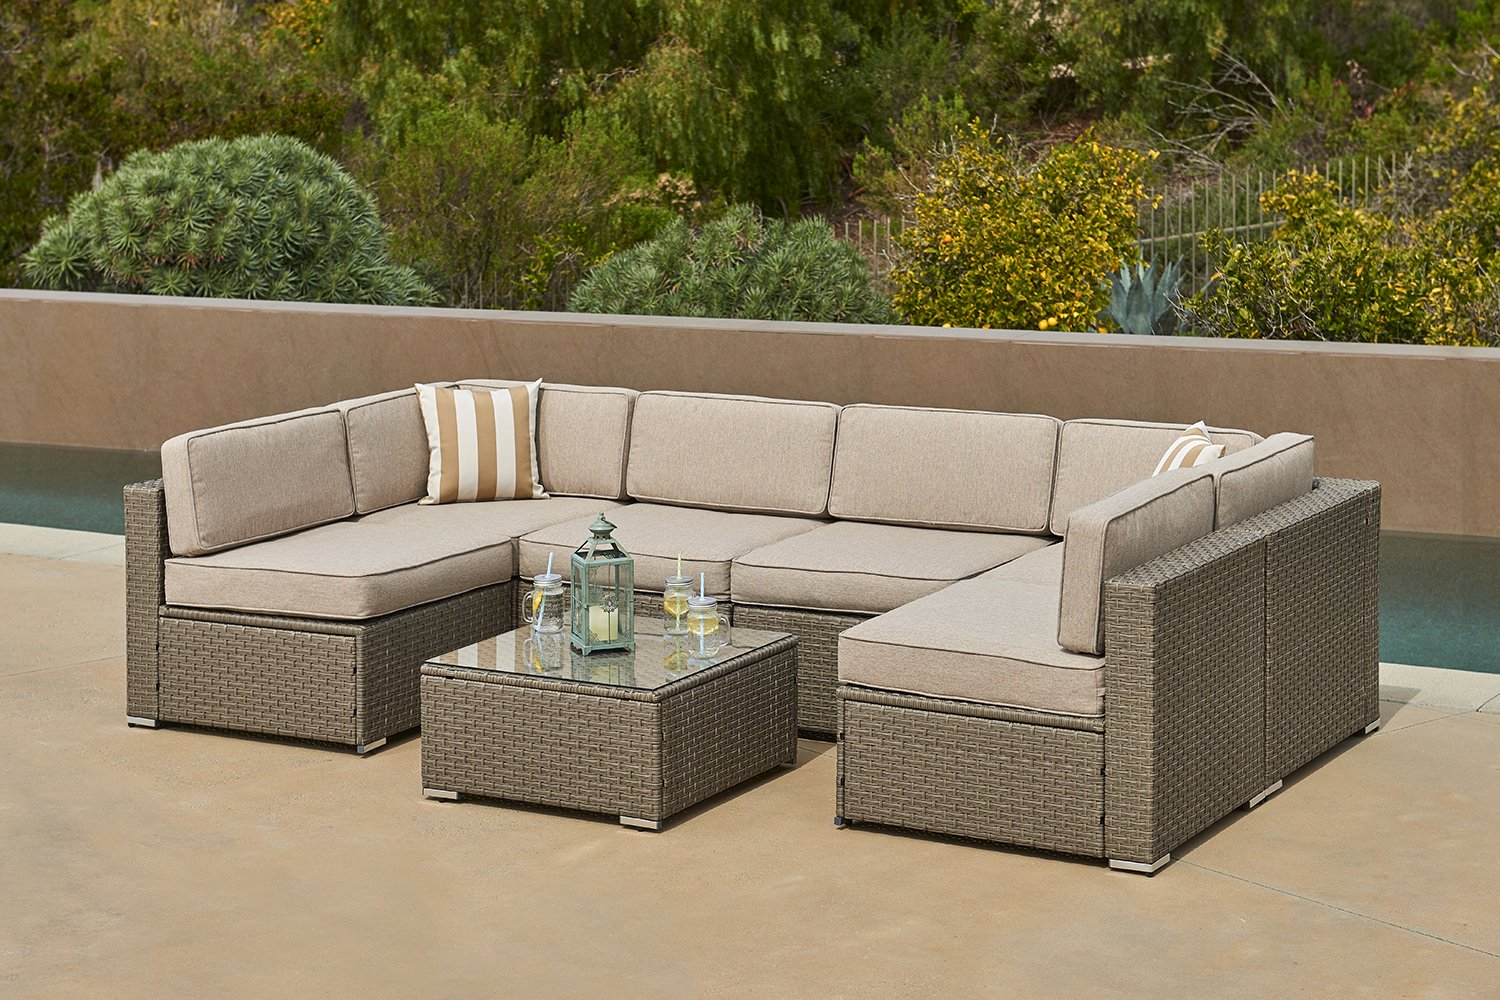 SOLVISTA Outdoor 7-Piece Modular Sectional Furniture Set All Weather Grey Wicker with Light Grey Water Resistant Cushions & Sophisticated Glass Coffee Table | Patio, Backyard, Pool by Solvista